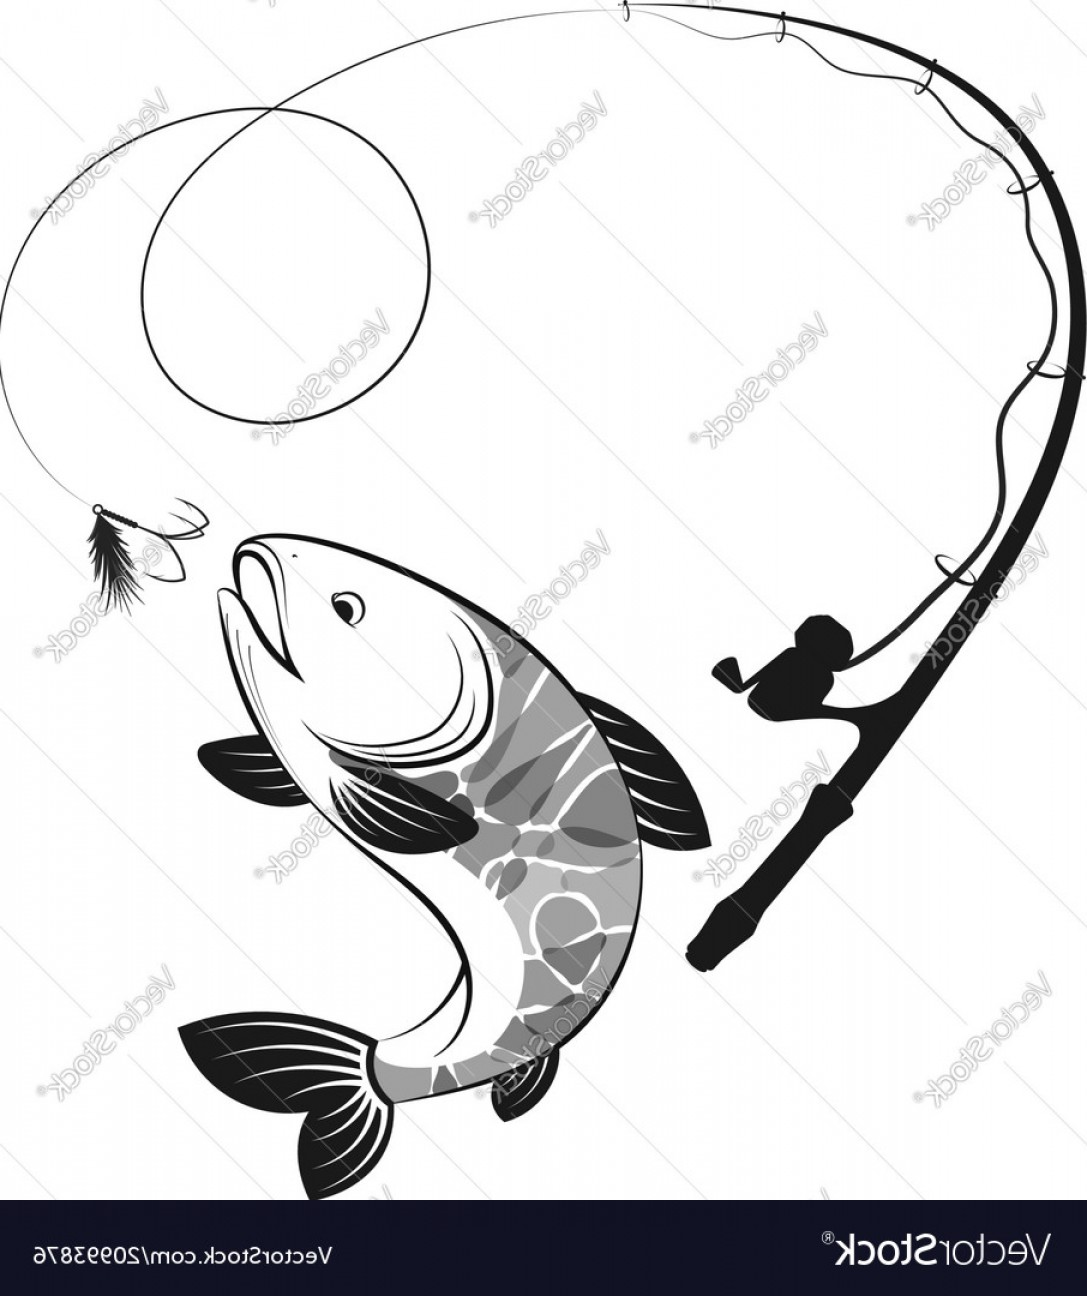 Fishing Pole Silhouette Vector: Fish And Fishing Rod Silhouettes Vector